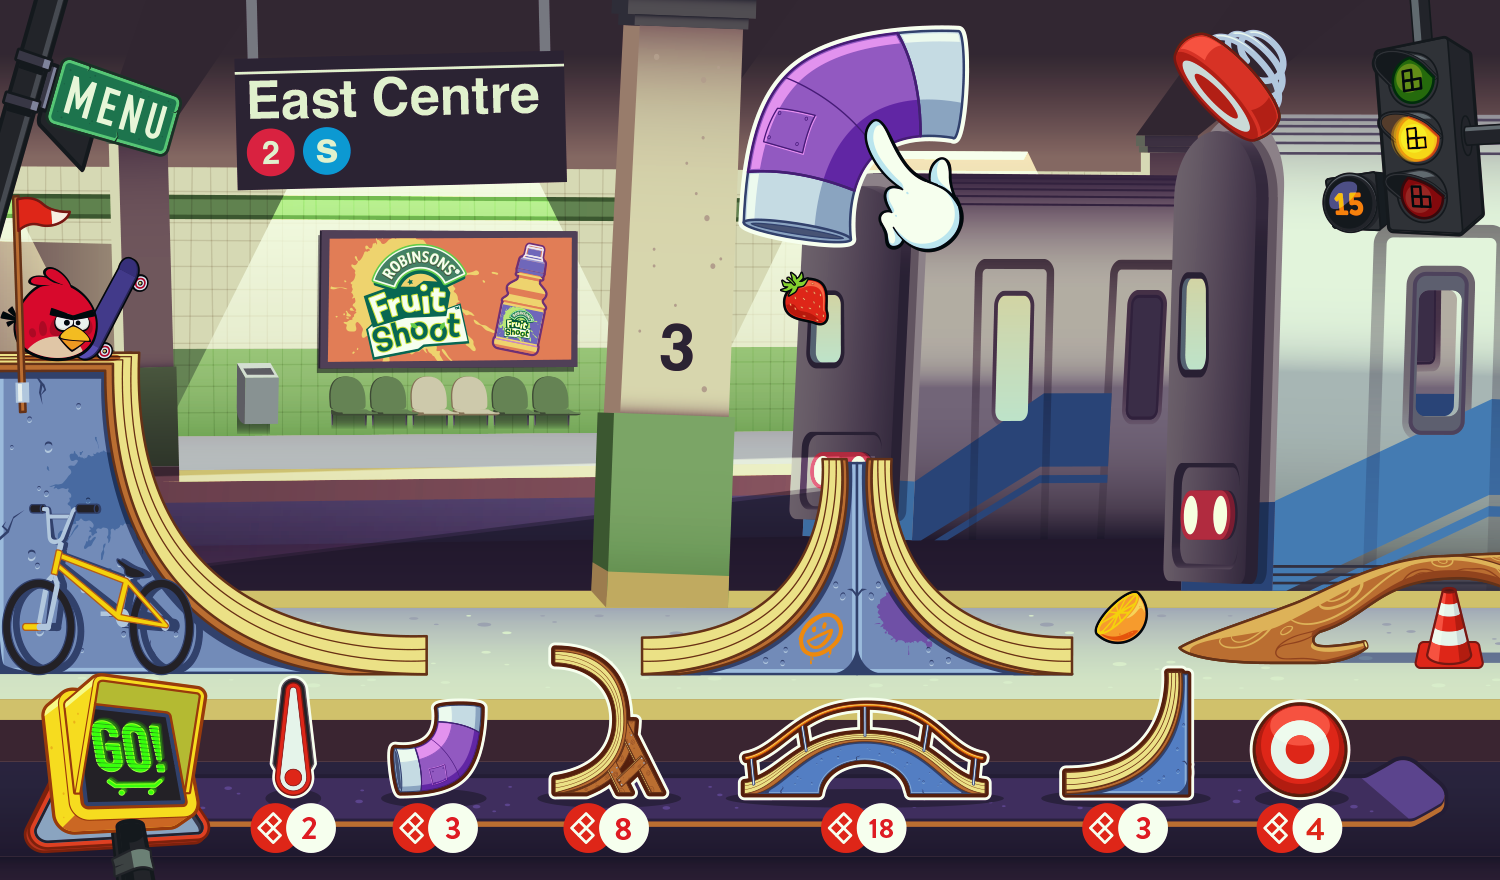 Angry-Birds-subway.png